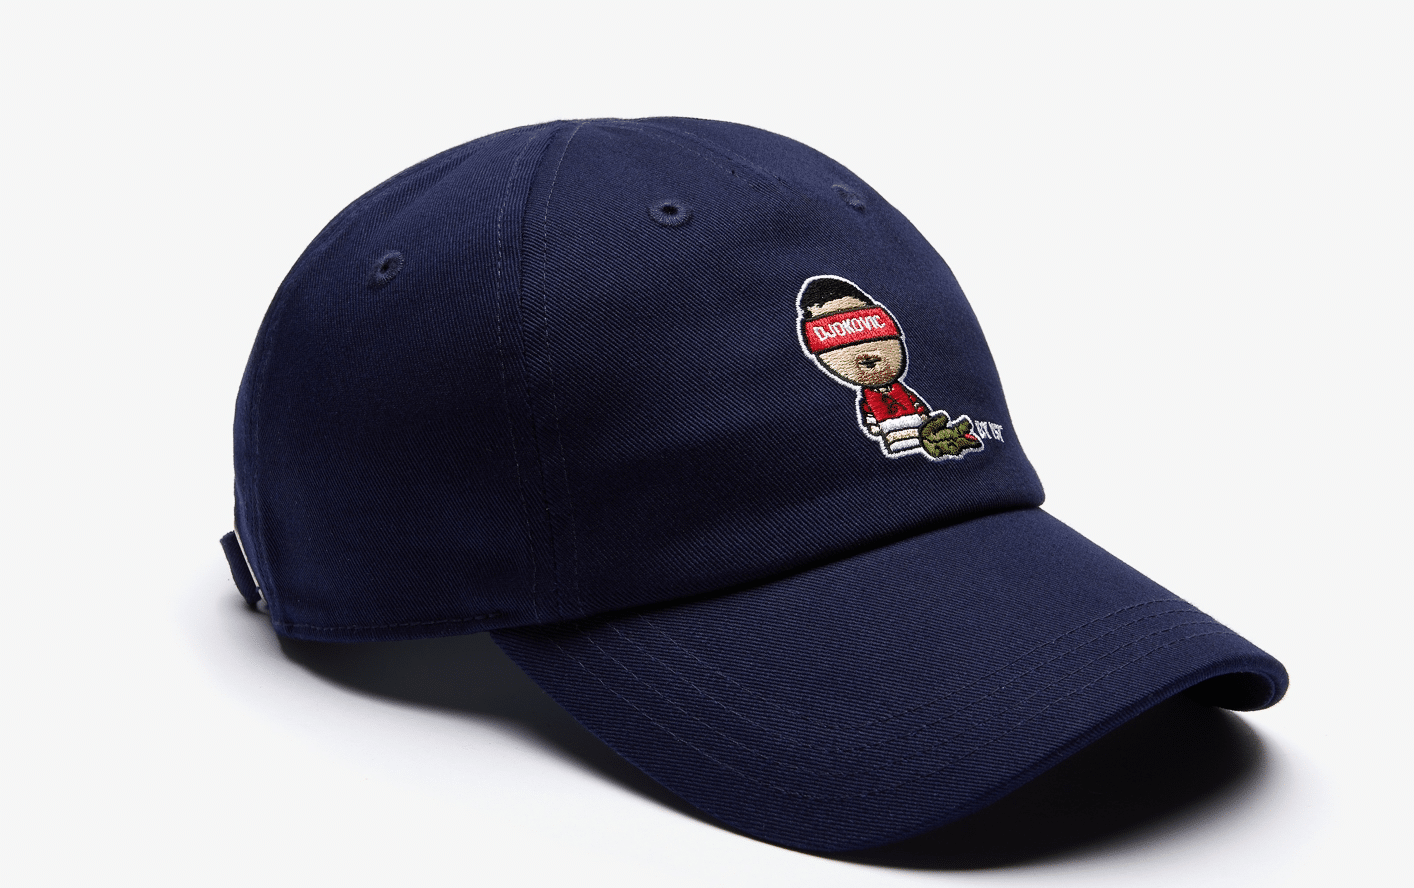 Collab: Lacoste x YSY Cotton Cap